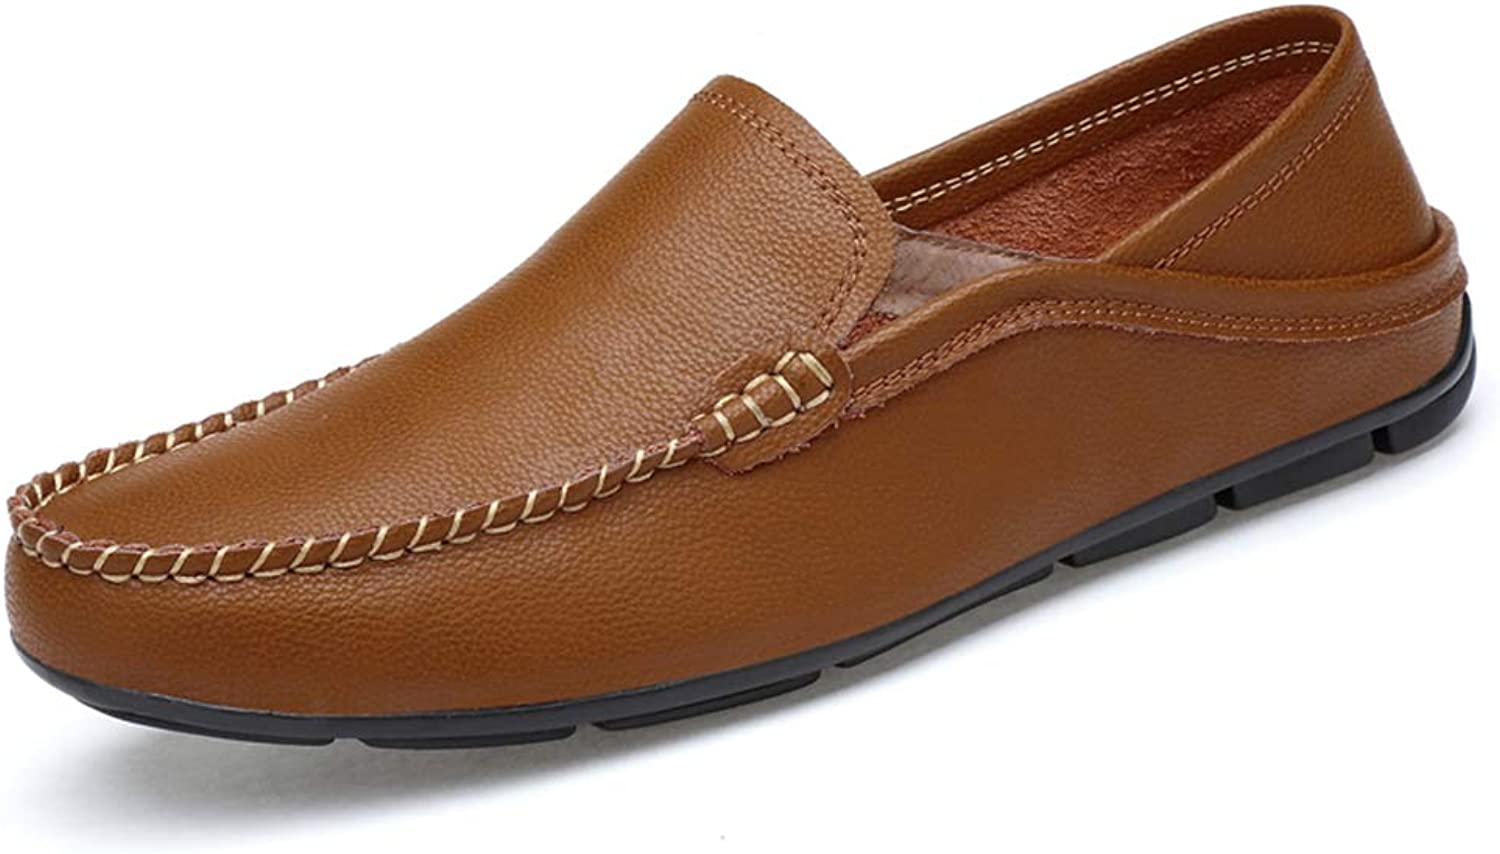 Men's Comfort Loafers Leather Spring Fall Comfort Loafers & Slip-Ons Black White Brown bluee